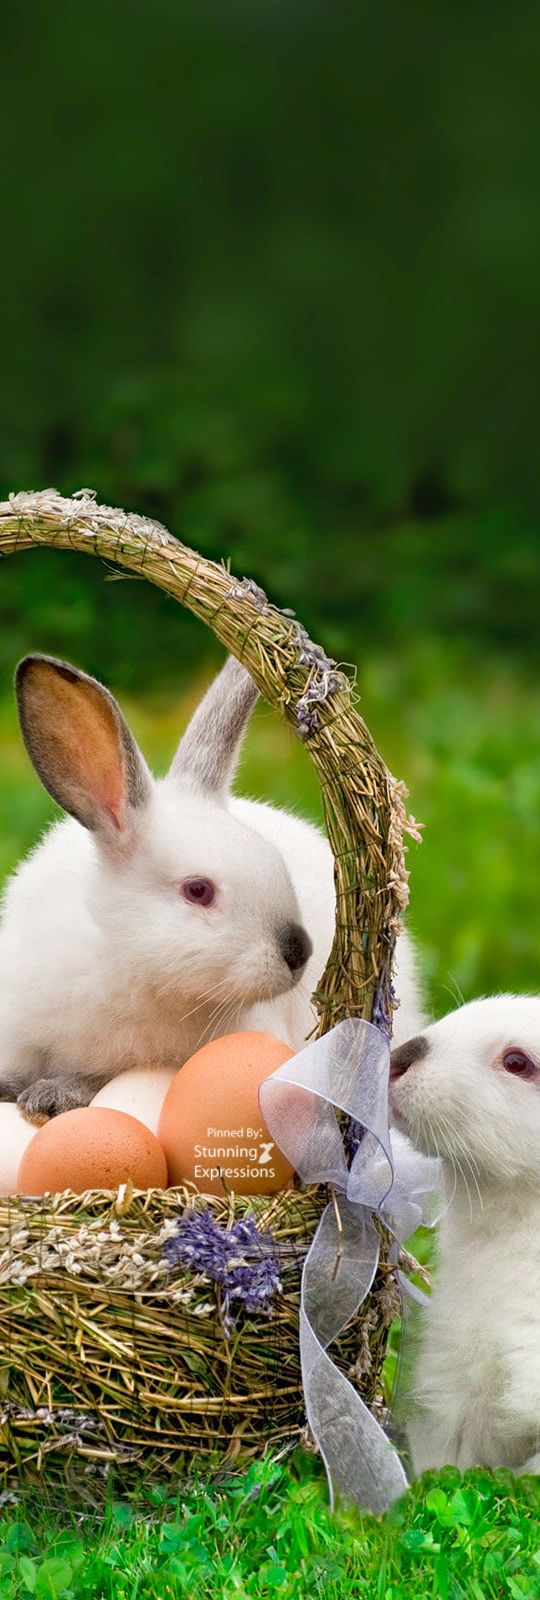 best holidays hoppy easter images on pinterest cute pics